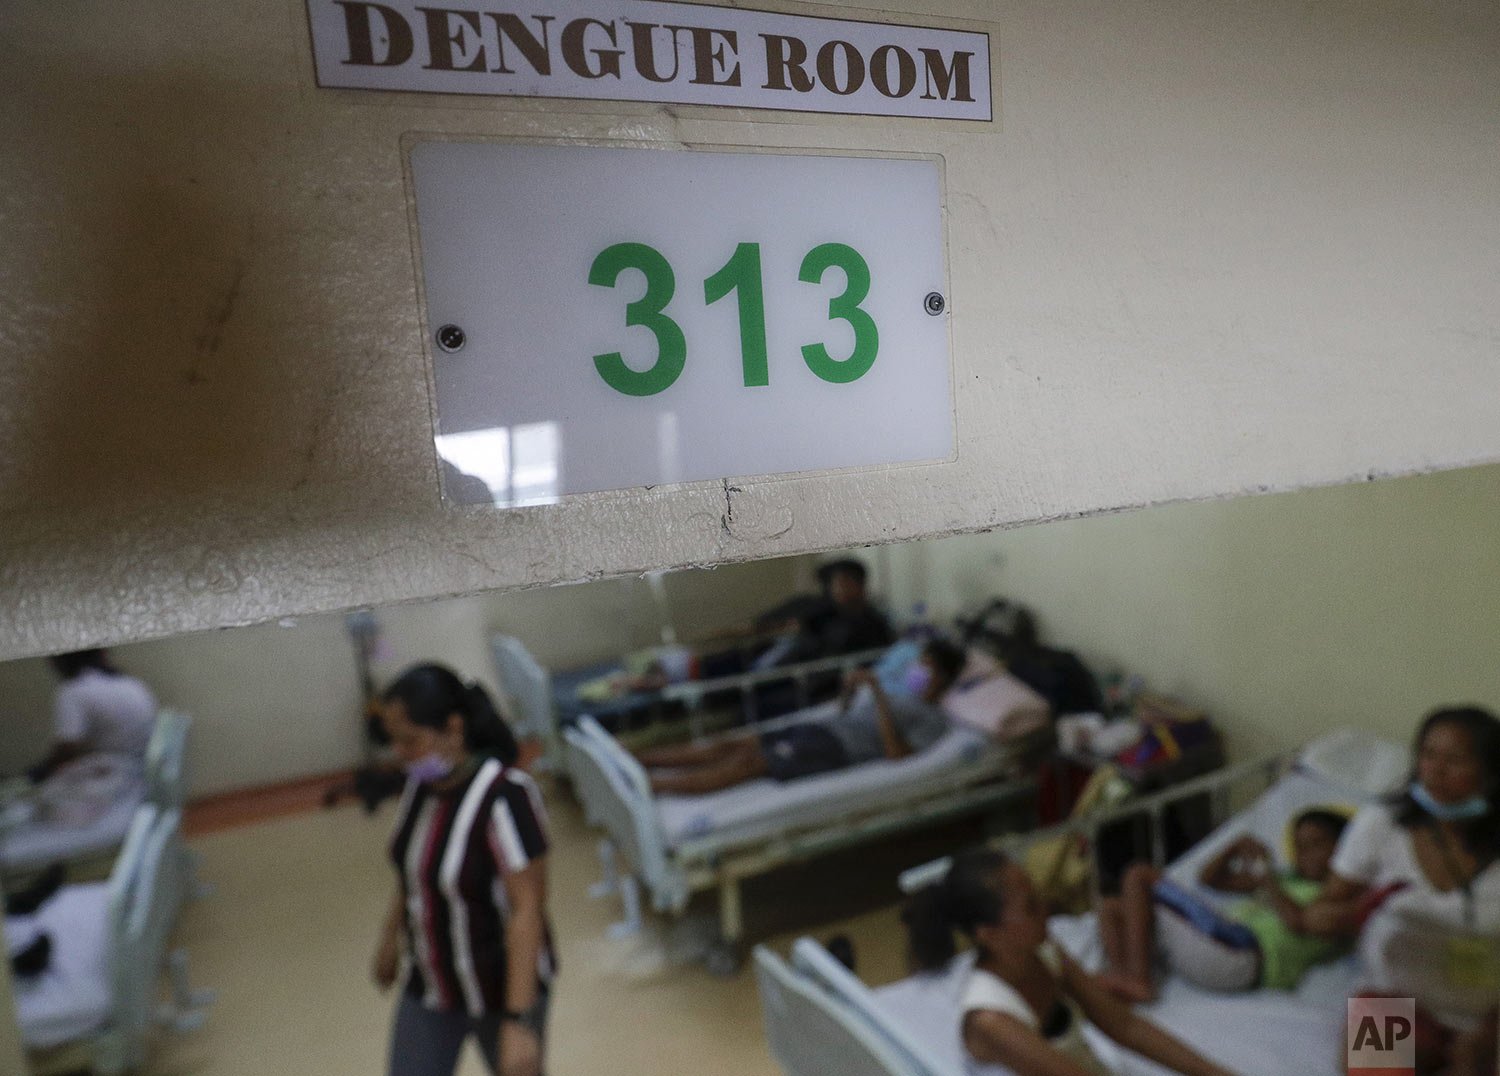 Dengue patients and relatives stay at the dengue room inside the San Lazaro government hospital in Manila, Philippines on Wednesday, Aug. 7, 2019. (AP Photo/Aaron Favila)